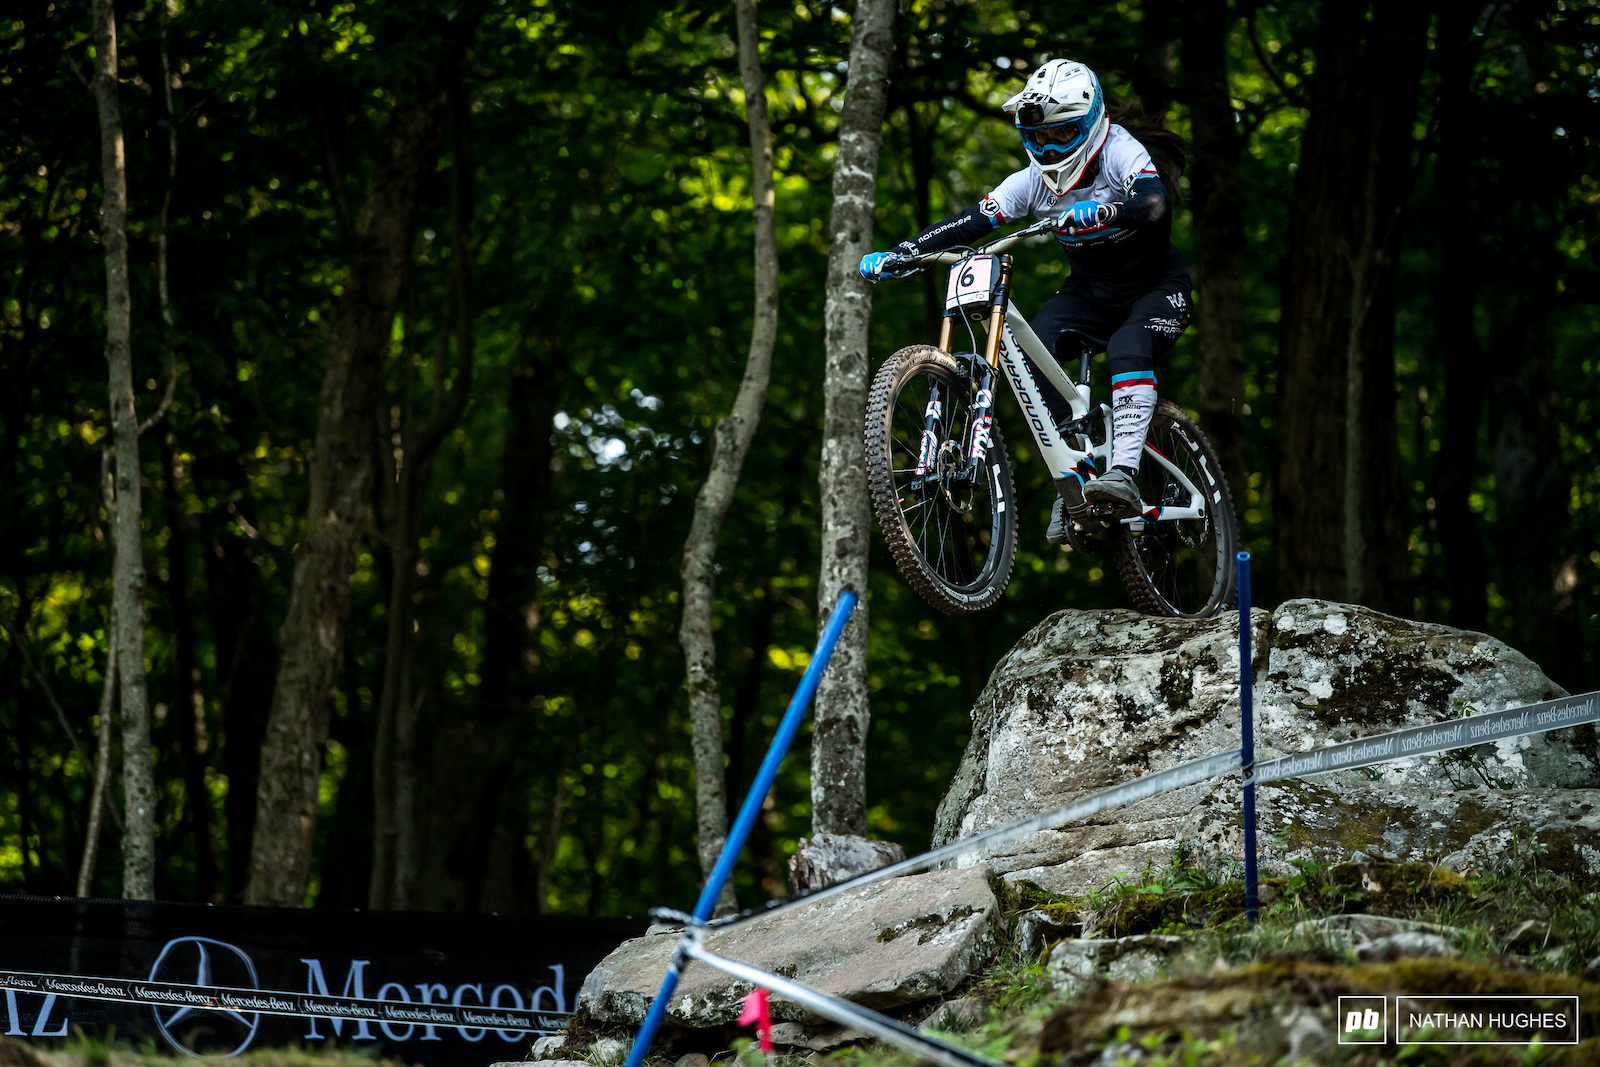 Ele Farina is looking rapid once ahain after recovering from her injured leg at Worlds.